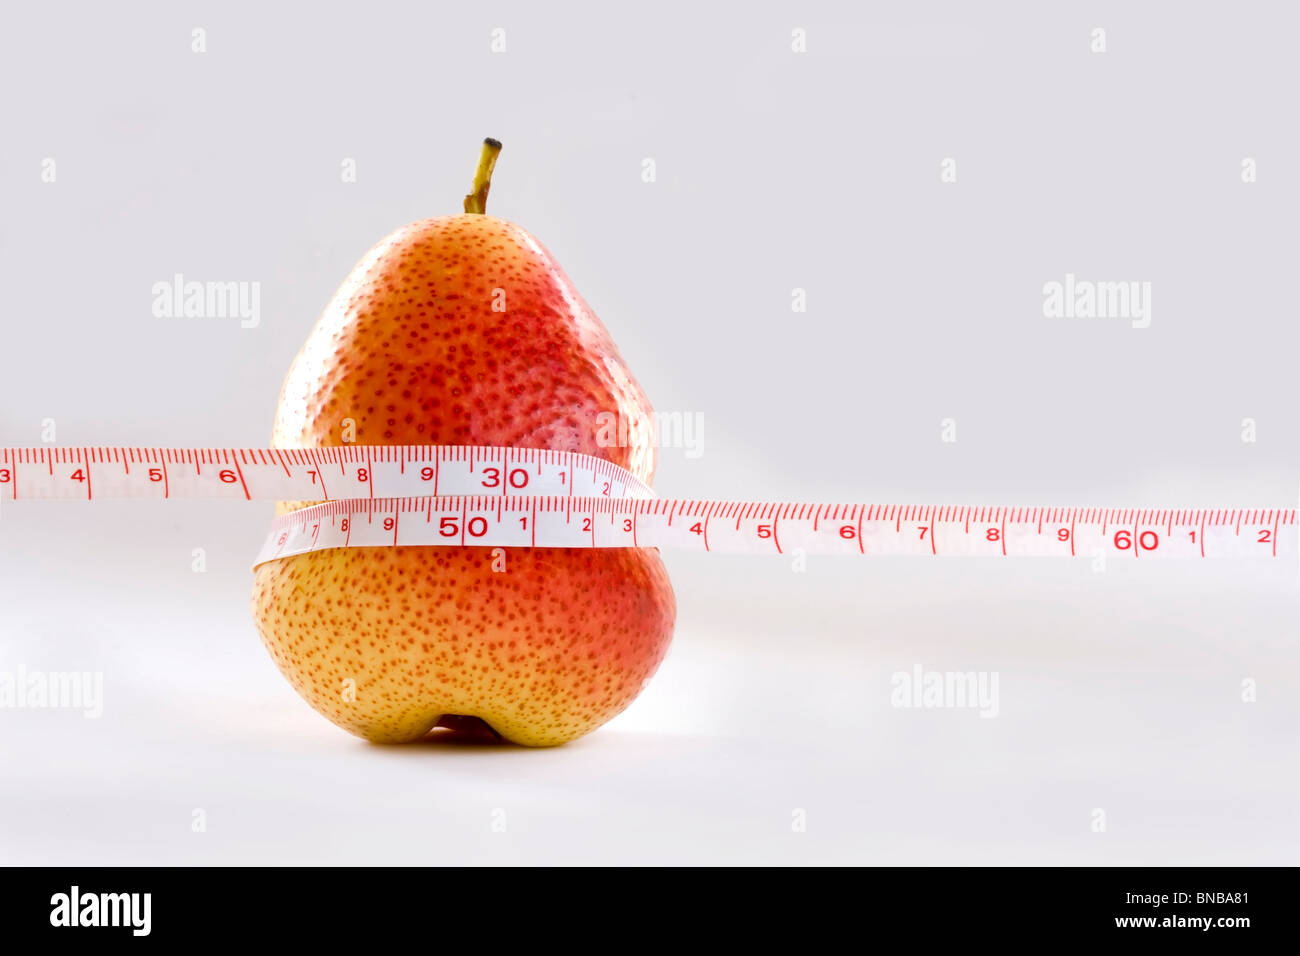 pear oppress by measurement tape to symbol as a diet - Stock Image